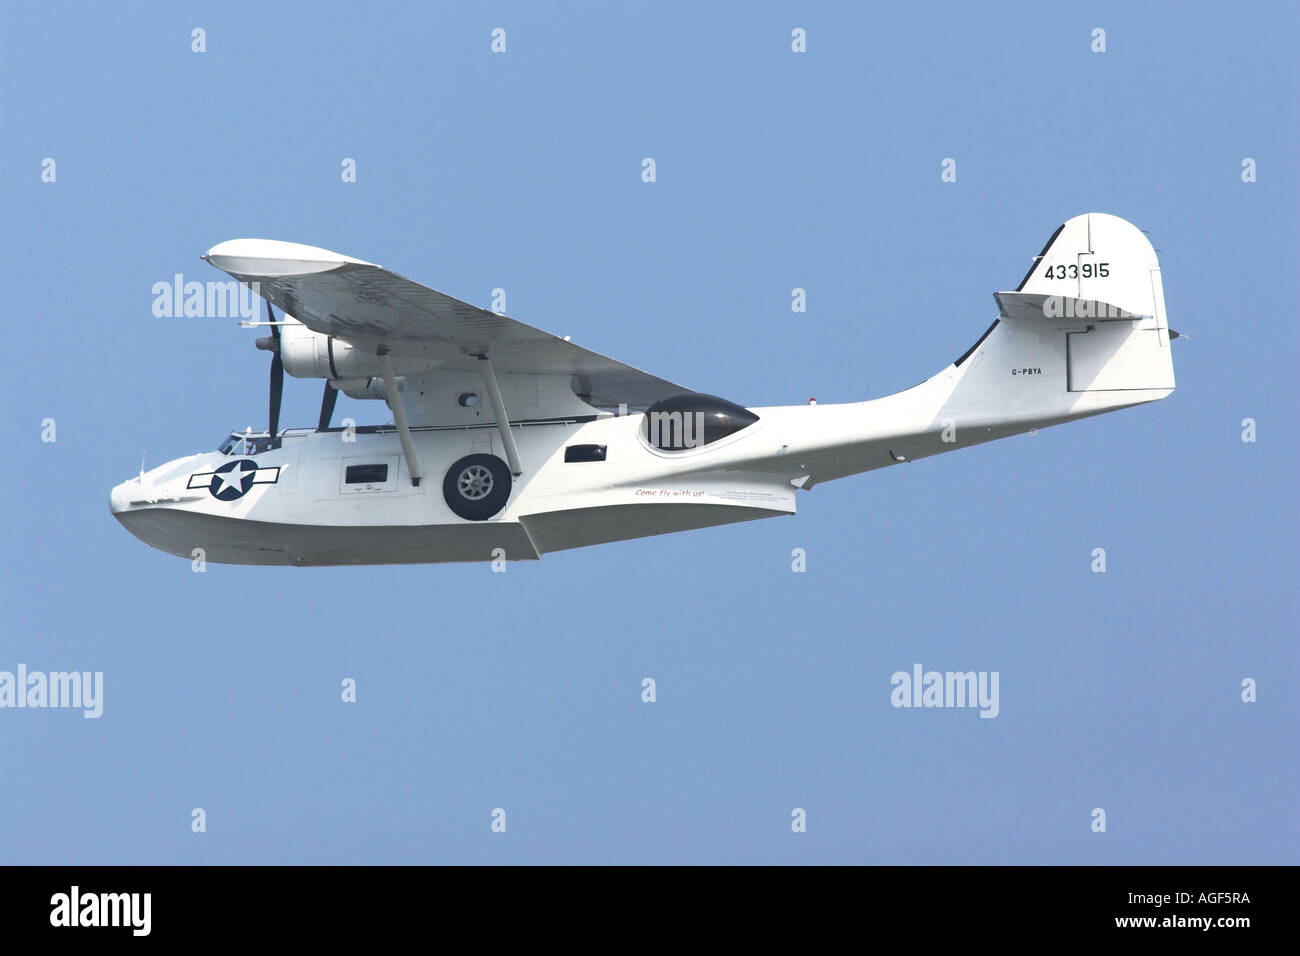 Consolidated PBY Catalina WW2 US Navy amphibious flying boat - Stock Image